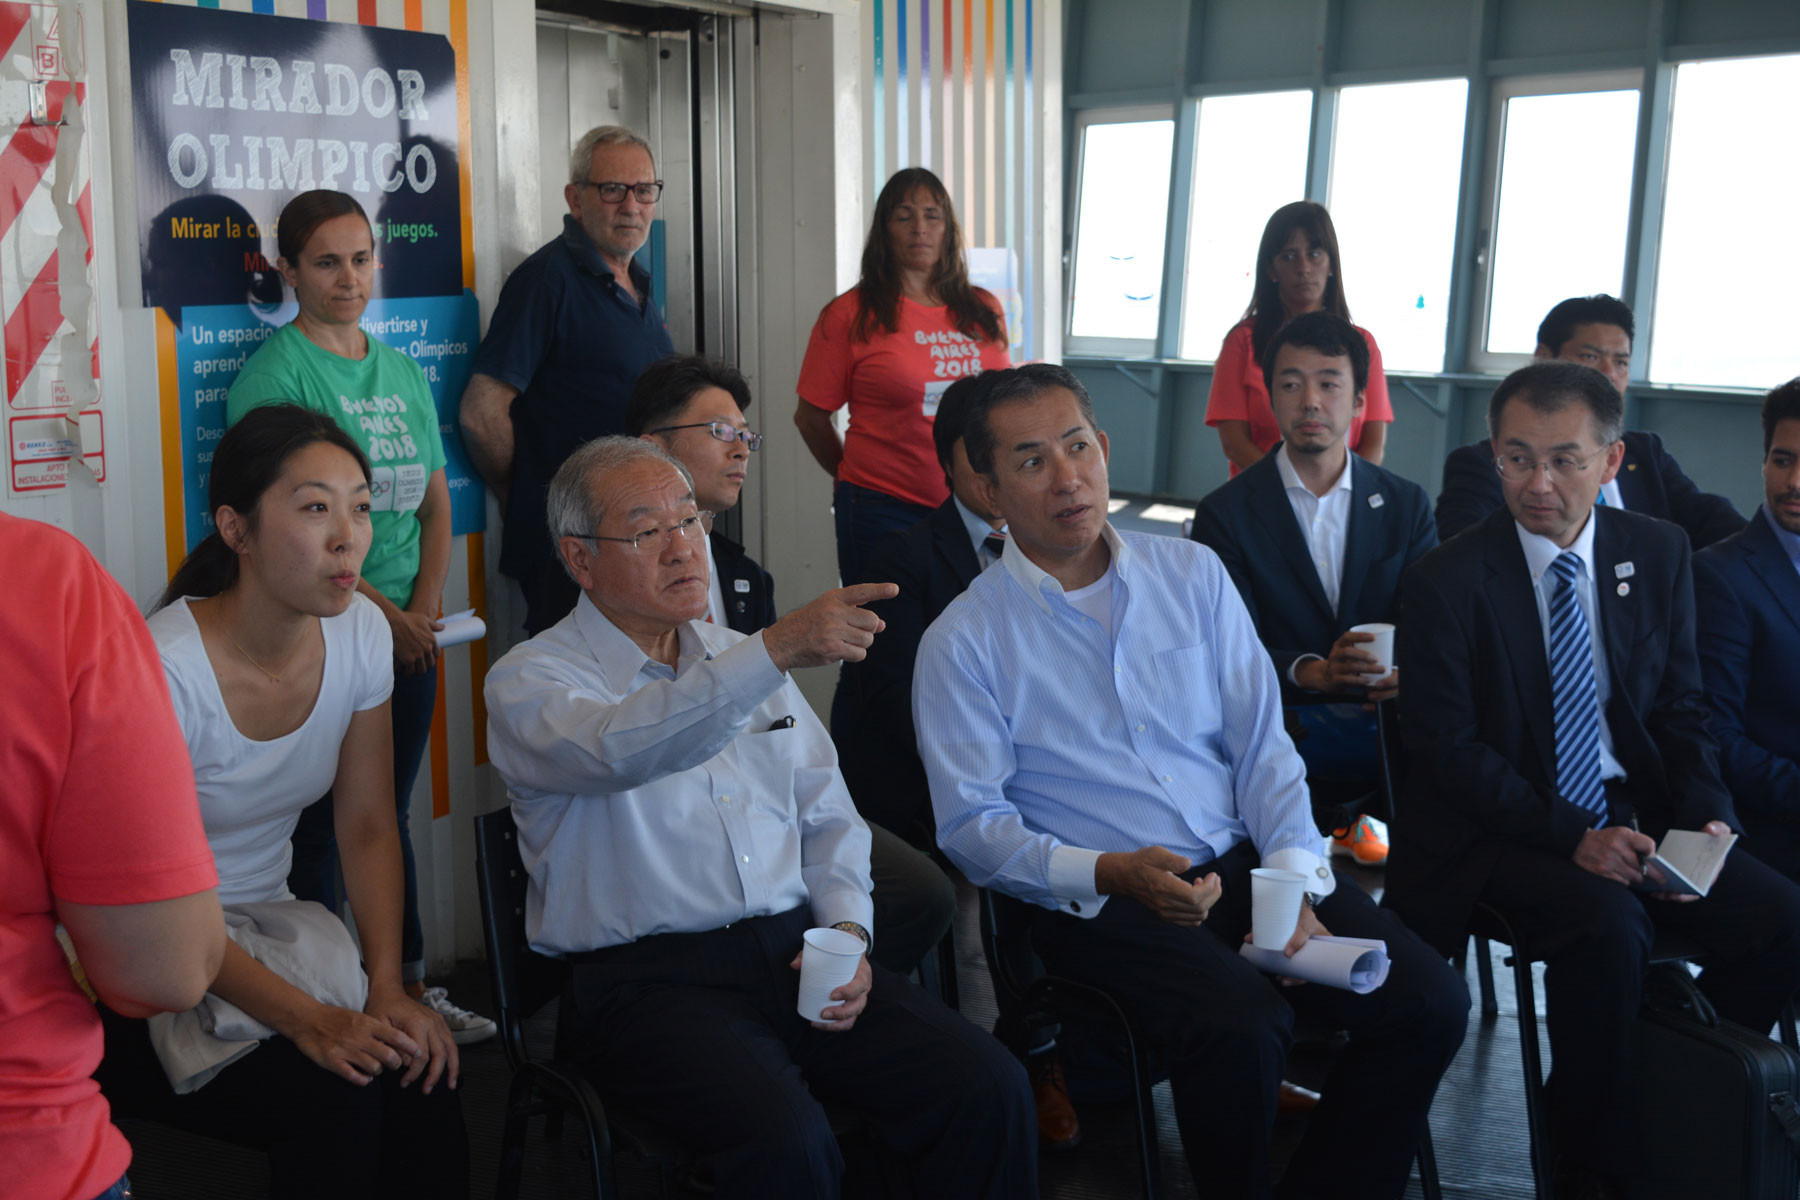 Tokyo 2020 Minister visits Rio 2016 and Buenos Aires 2018 venues